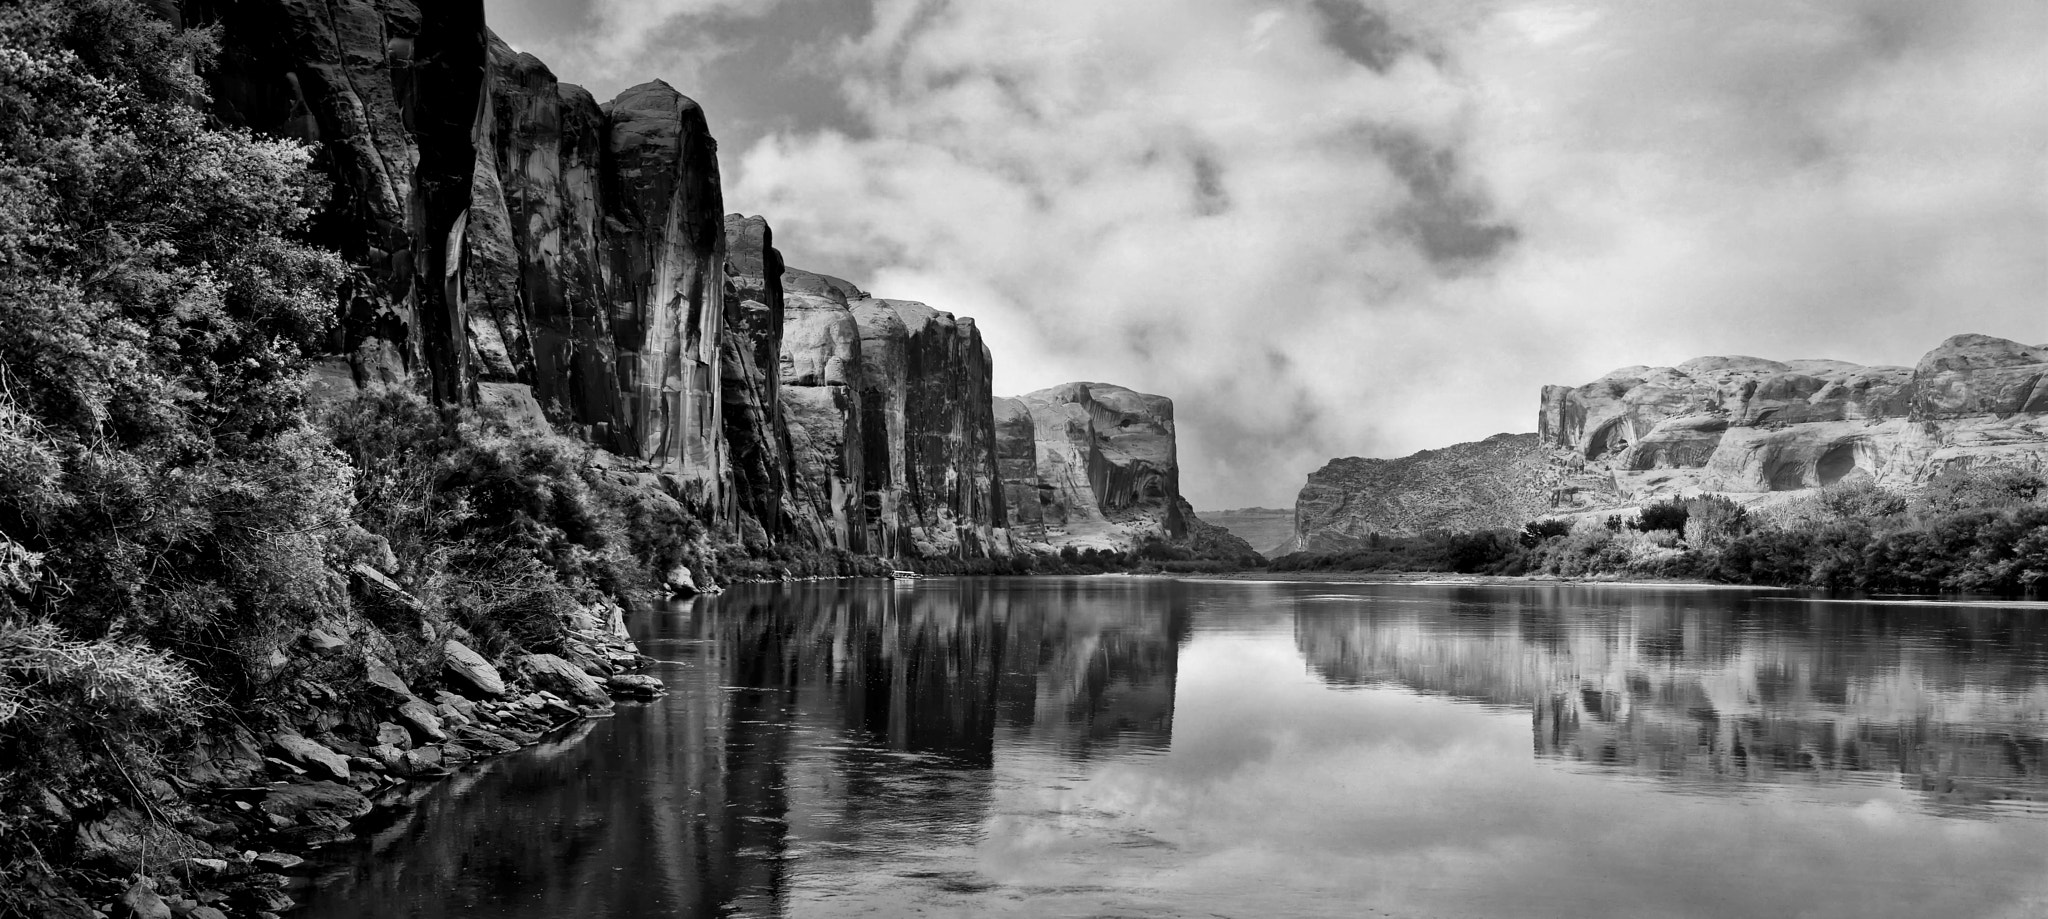 Photograph Along the River by Jeff Clow on 500px